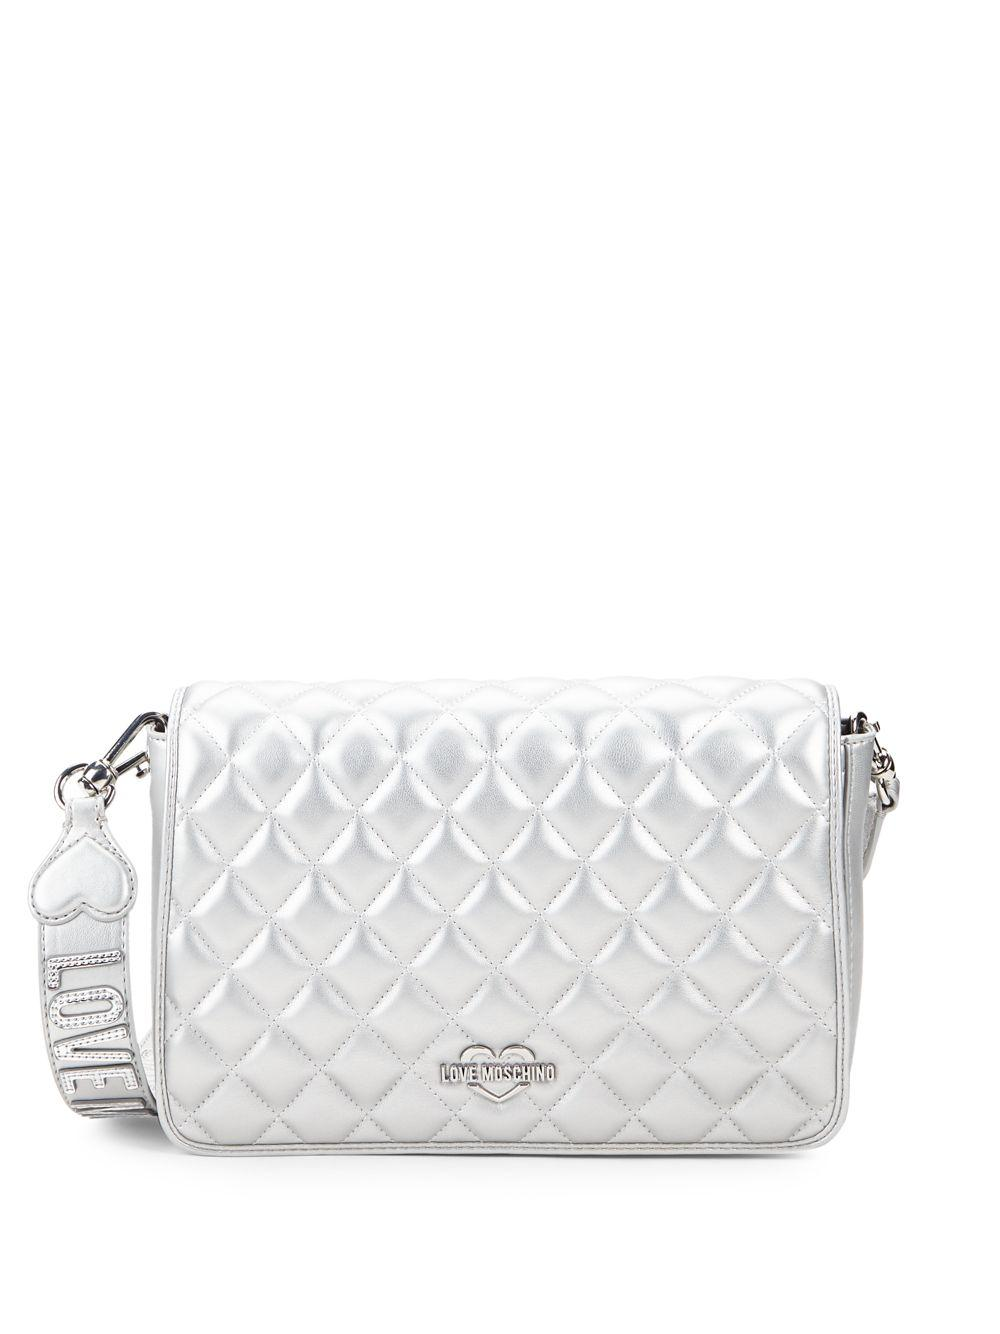 cd2f446f45 ... Metallic Quilted Faux Leather Convertible Crossbody Bag - Lyst. View  fullscreen